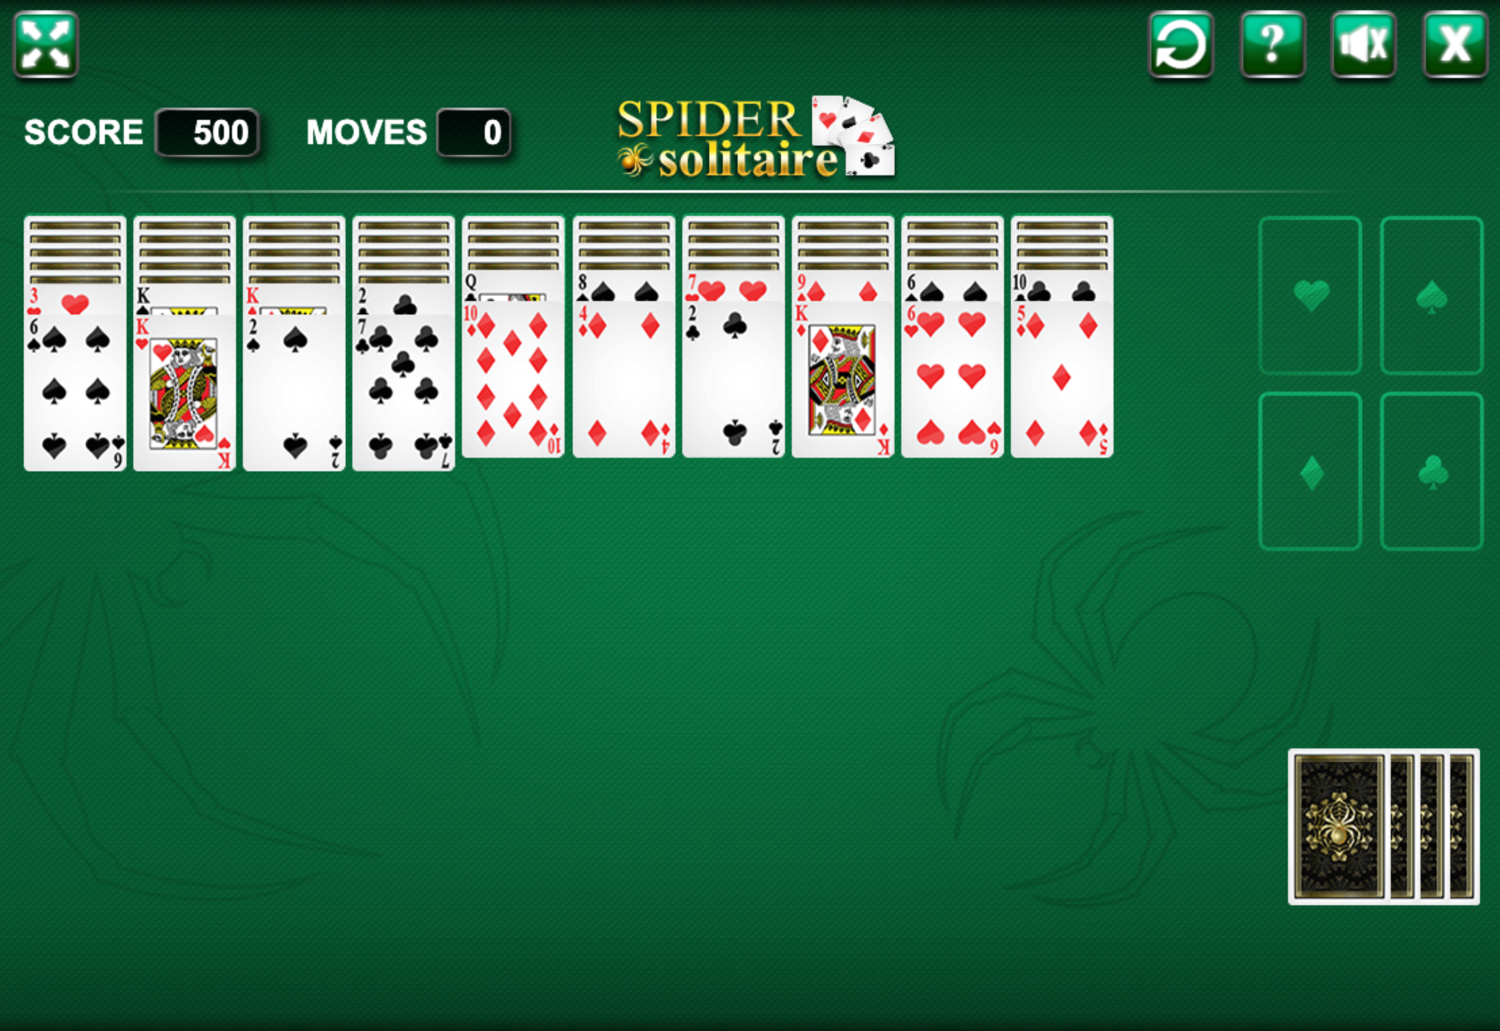 Spider Solitaire Four Suits Game Screenshot.